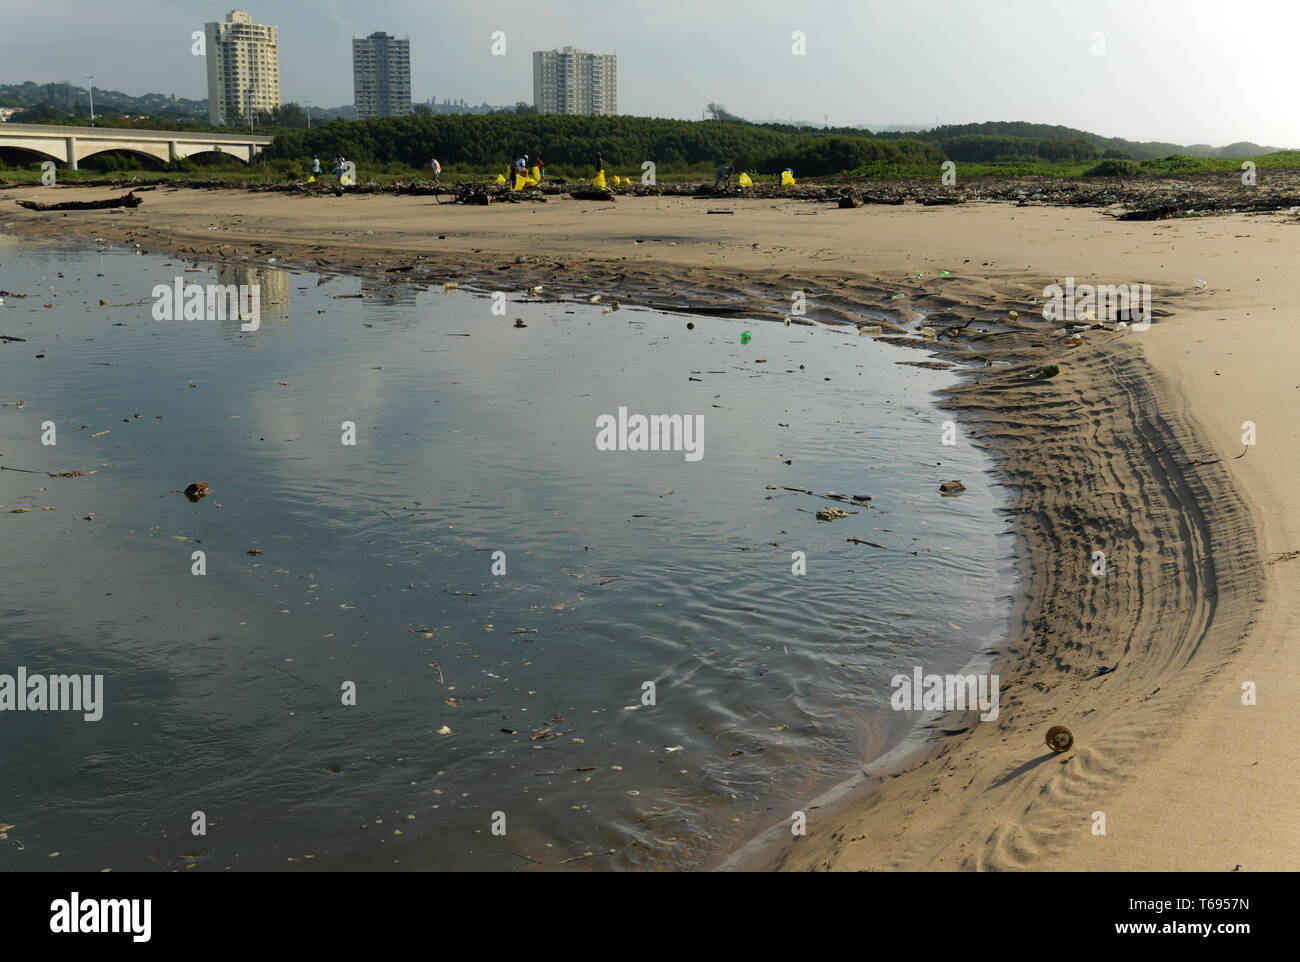 Durban, KwaZulu-Natal, South Africa, plastic pollution, community volunteers cleaning waste from tidal zone in Umgeni river estuary, landscape - Stock Image